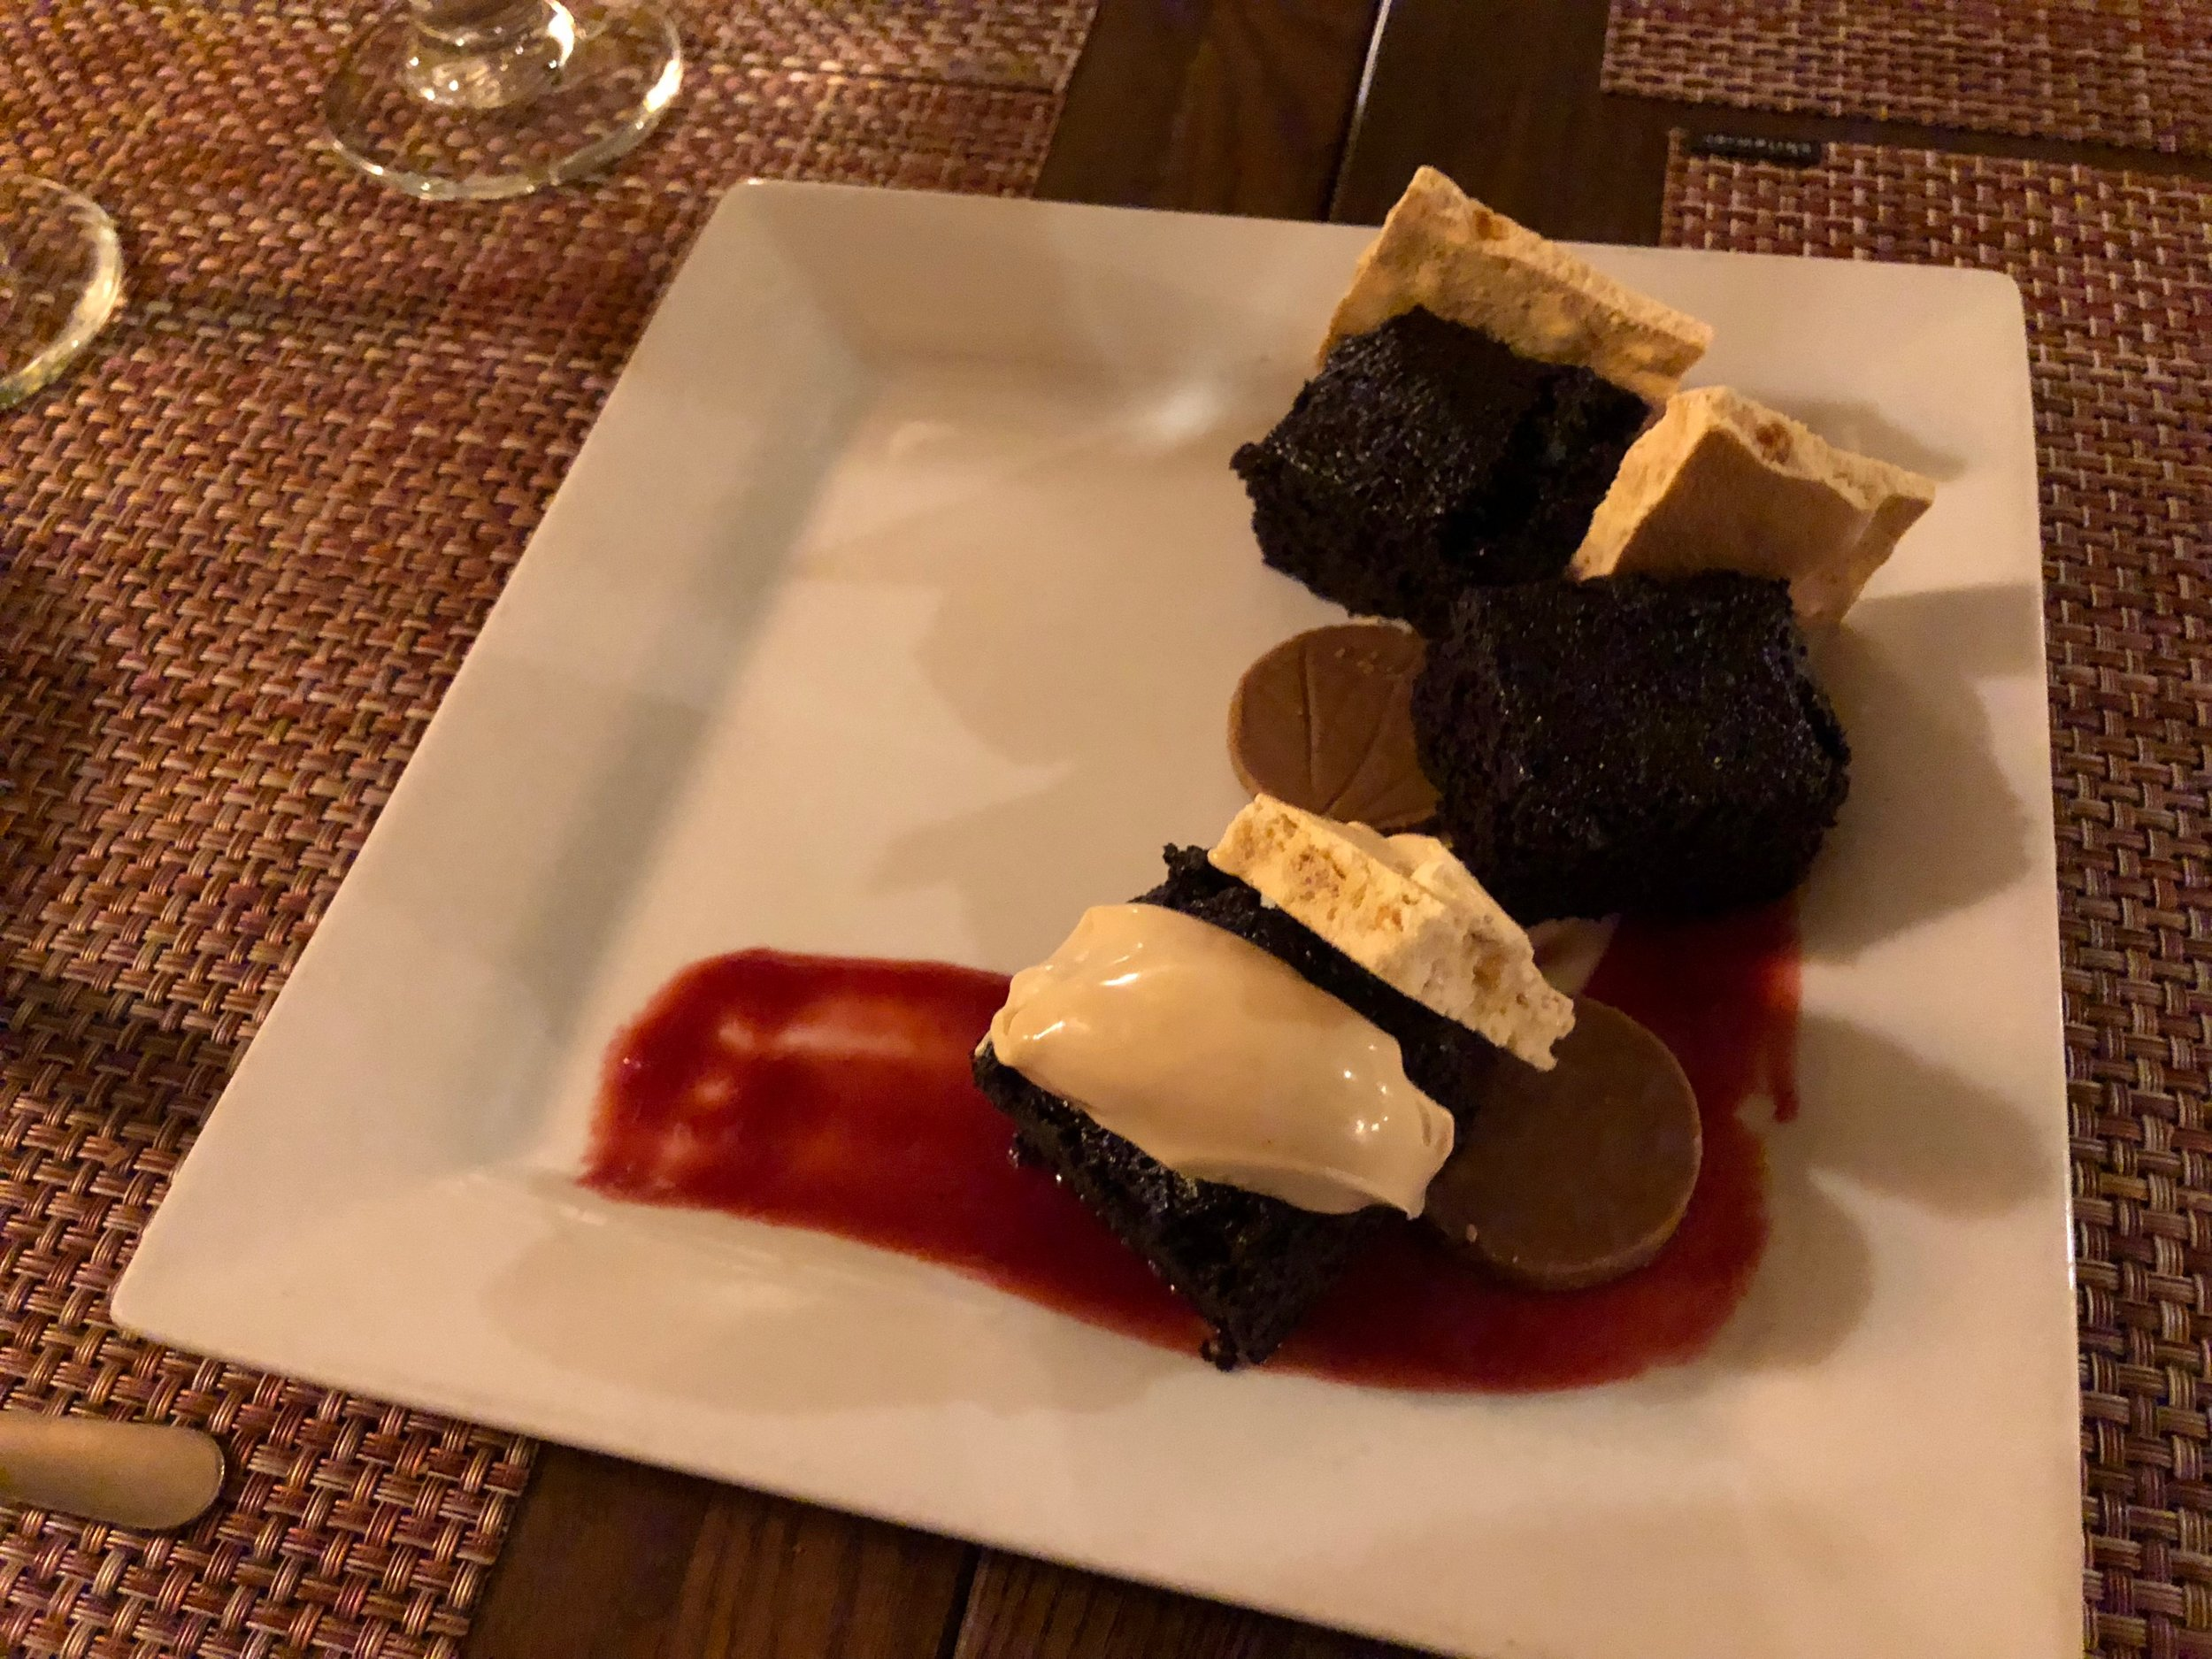 Chocolate Olive Oil Cake with peanut butter honeycomb and raspberry sauce at El Farol